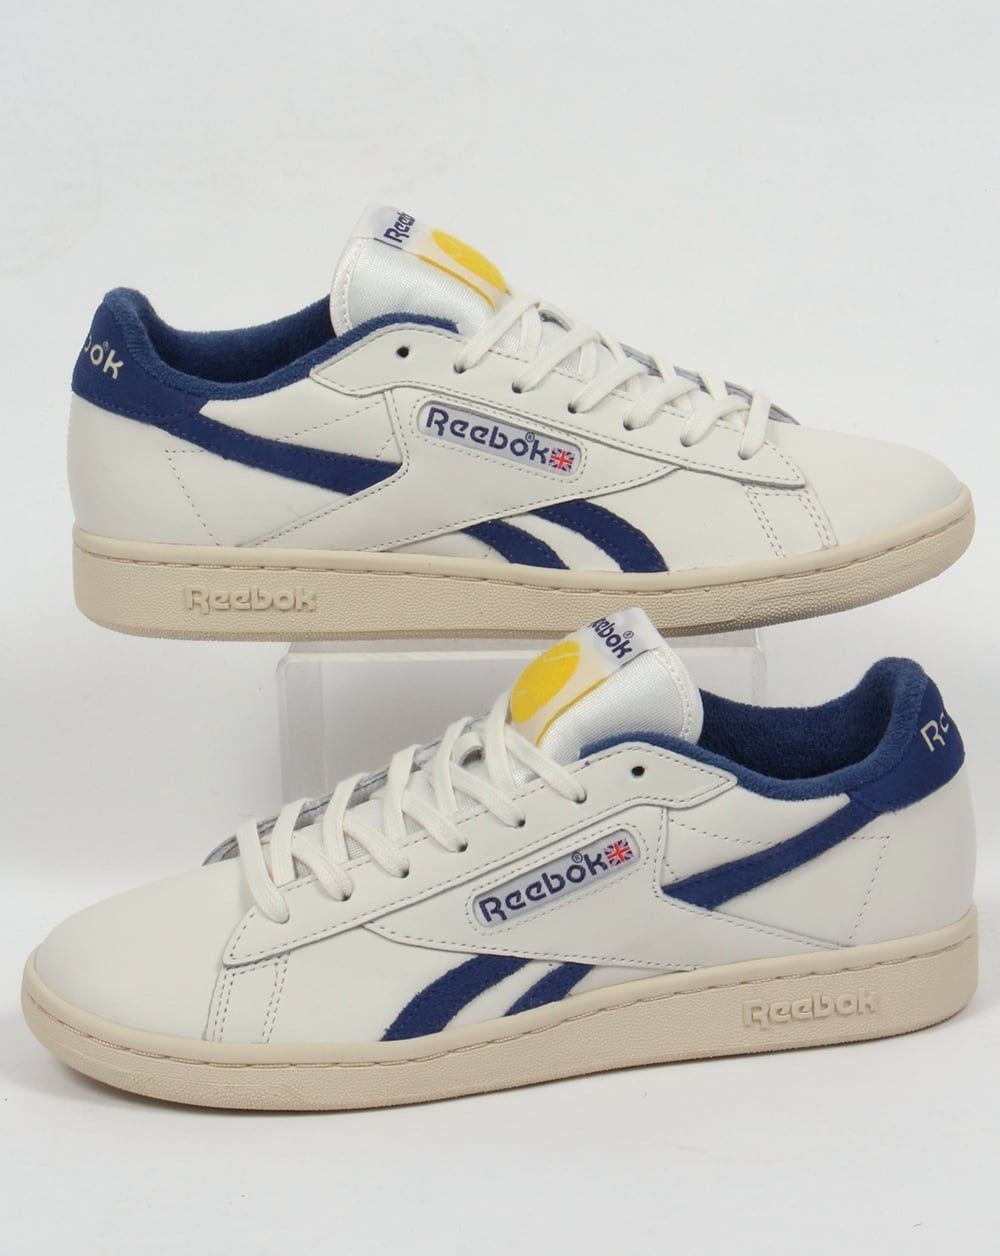 92cda200474545 ... promo code for reebok npc uk trainers chalk white blue 67d71 79f35